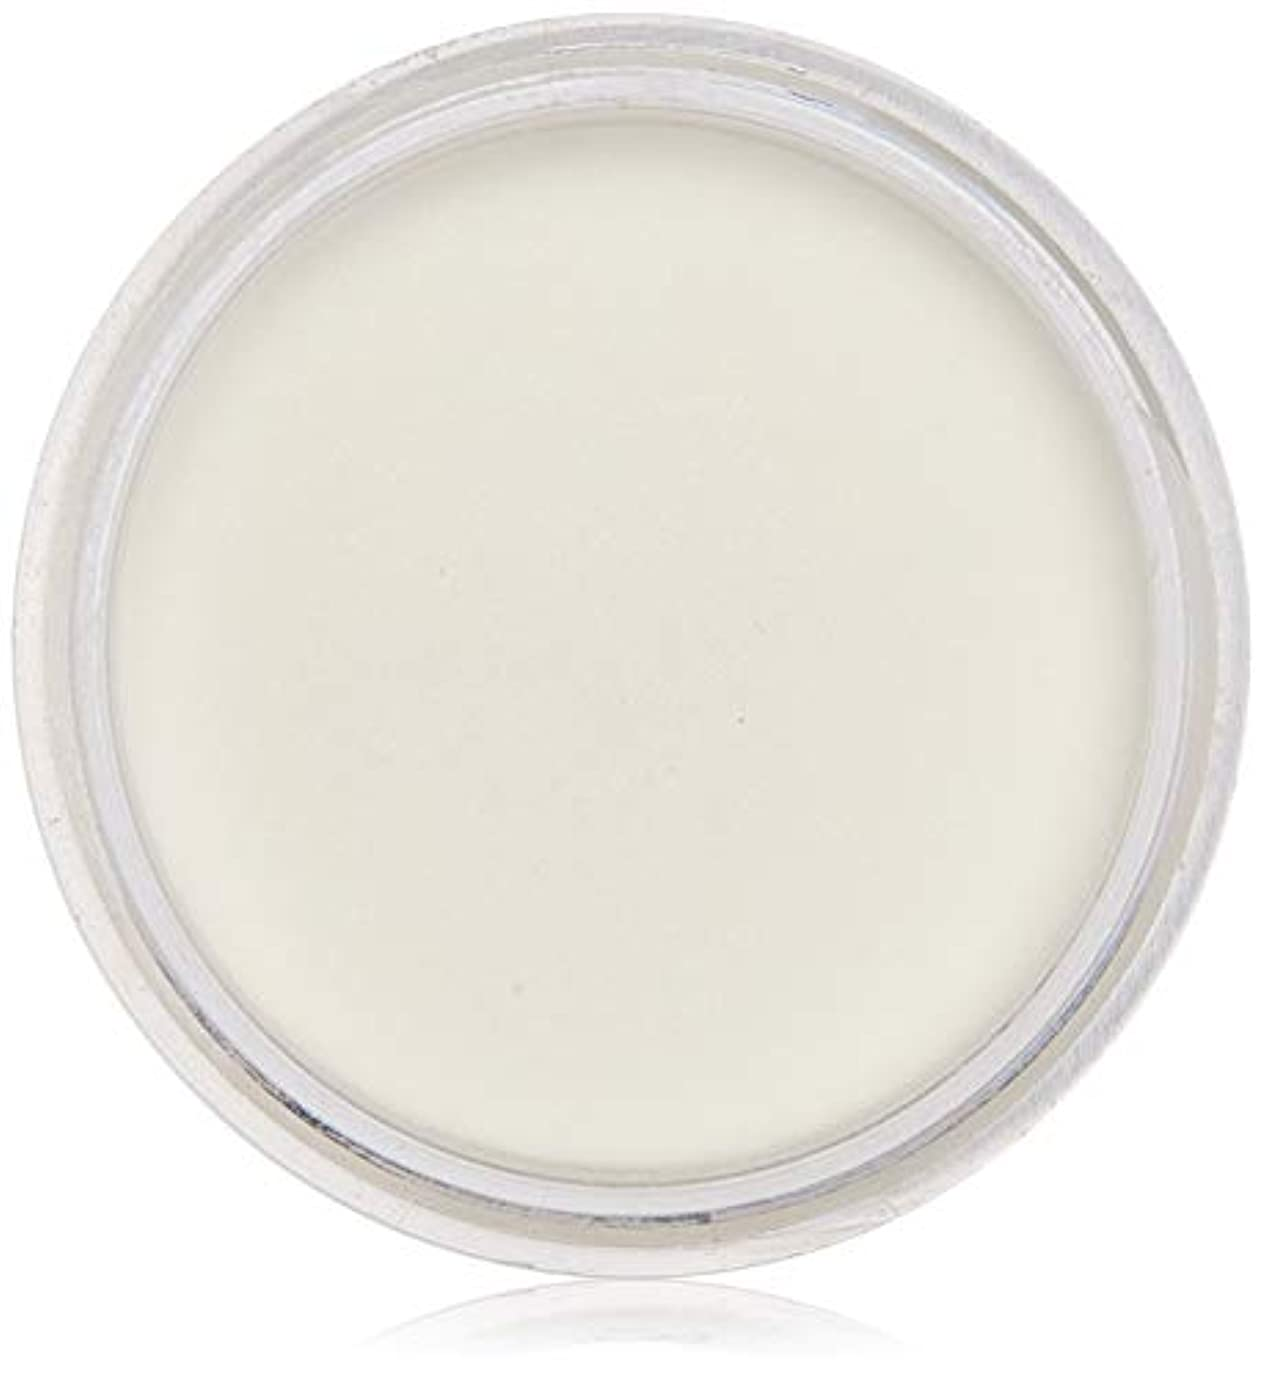 ある有益な演劇Harmony Gelish - Acrylic Dip Powder - Clear as Day - 23g / 0.8oz